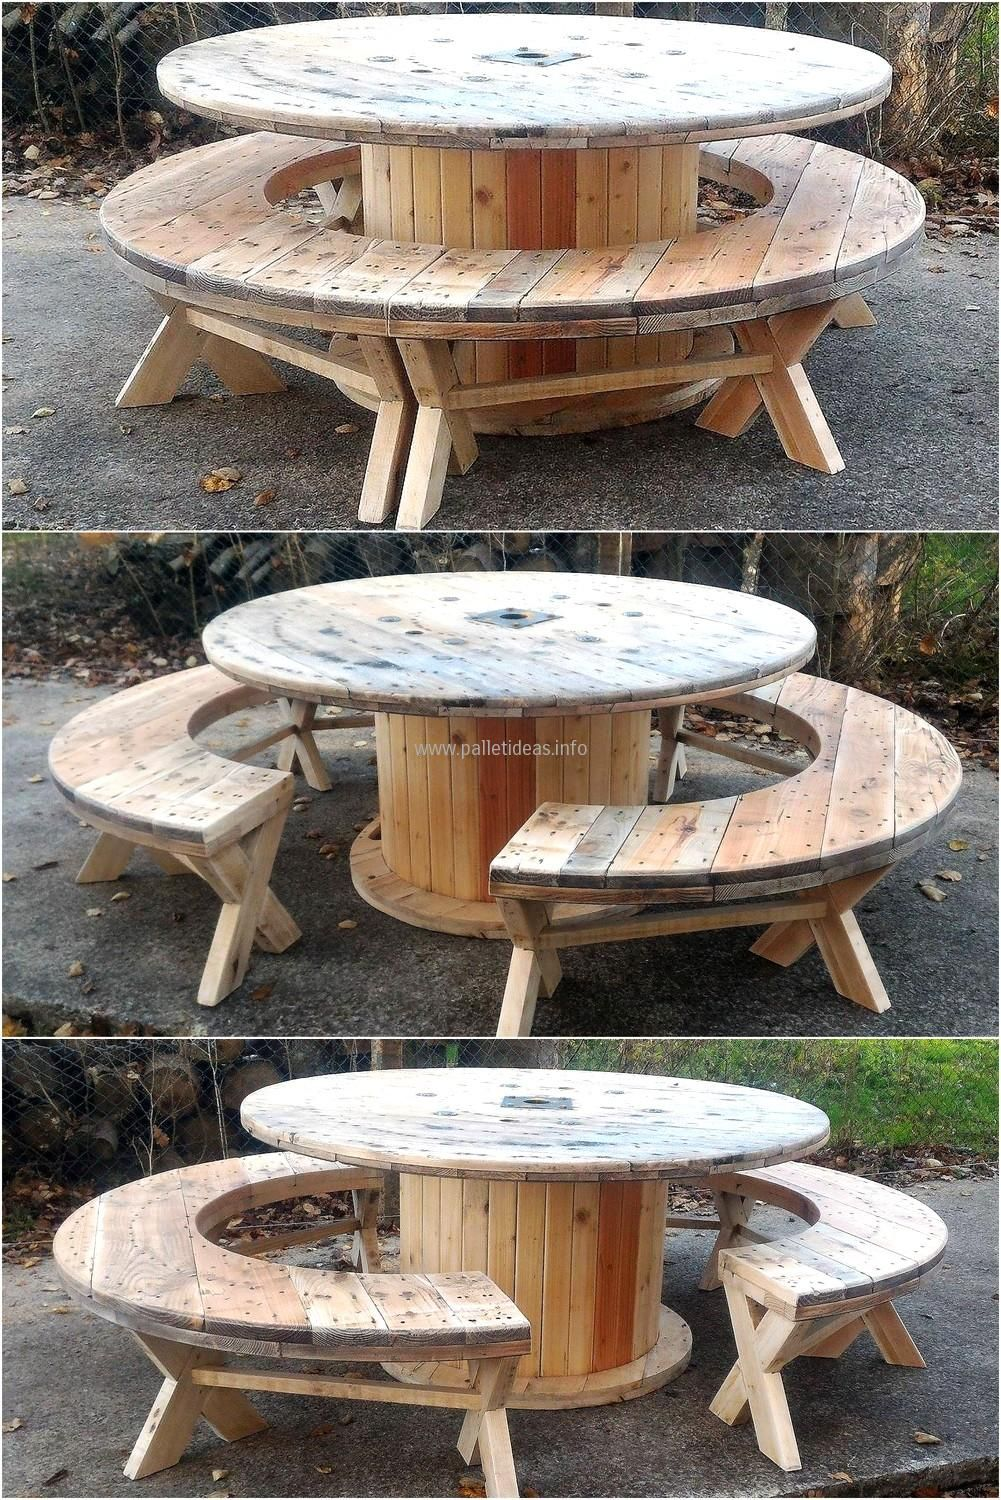 Recycled Pallet Cable Reel Patio Furniture | palettes tourets ...